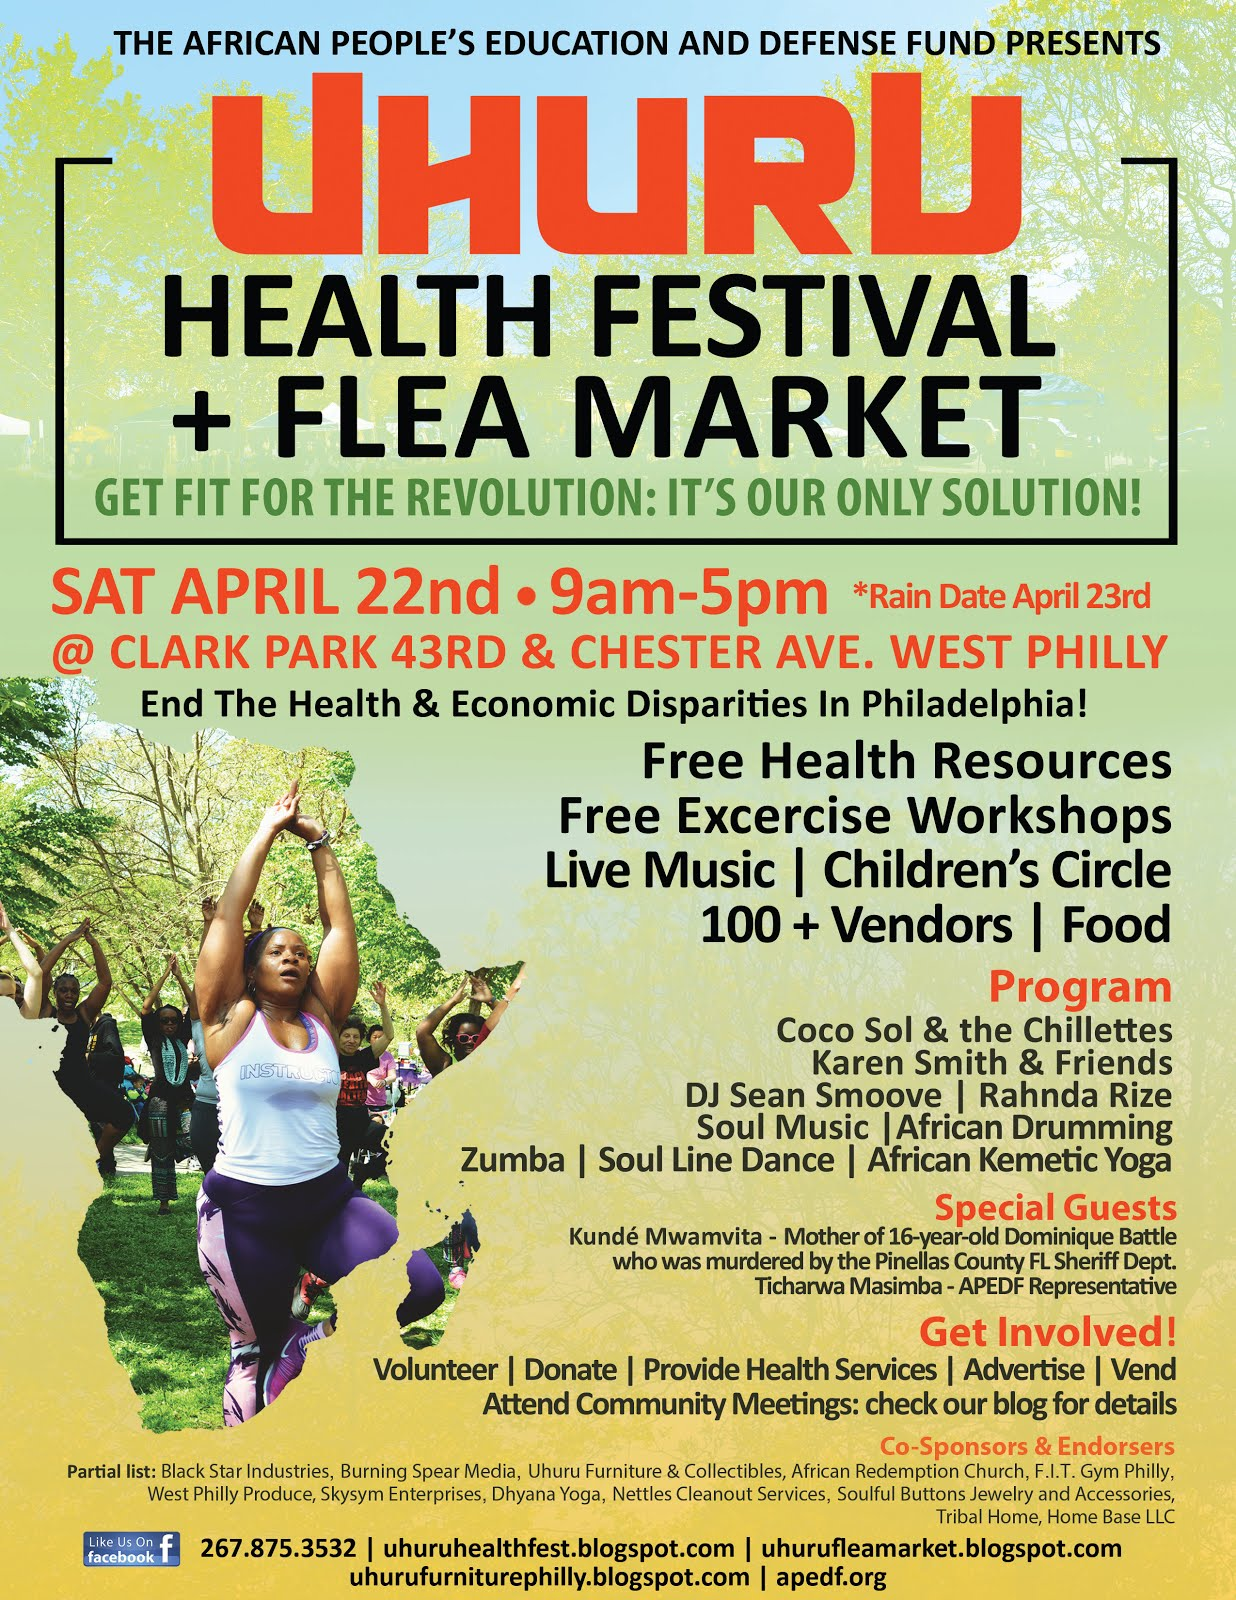 Don't Miss the Uhuru Health Festival & Flea Market Sat. April 22nd